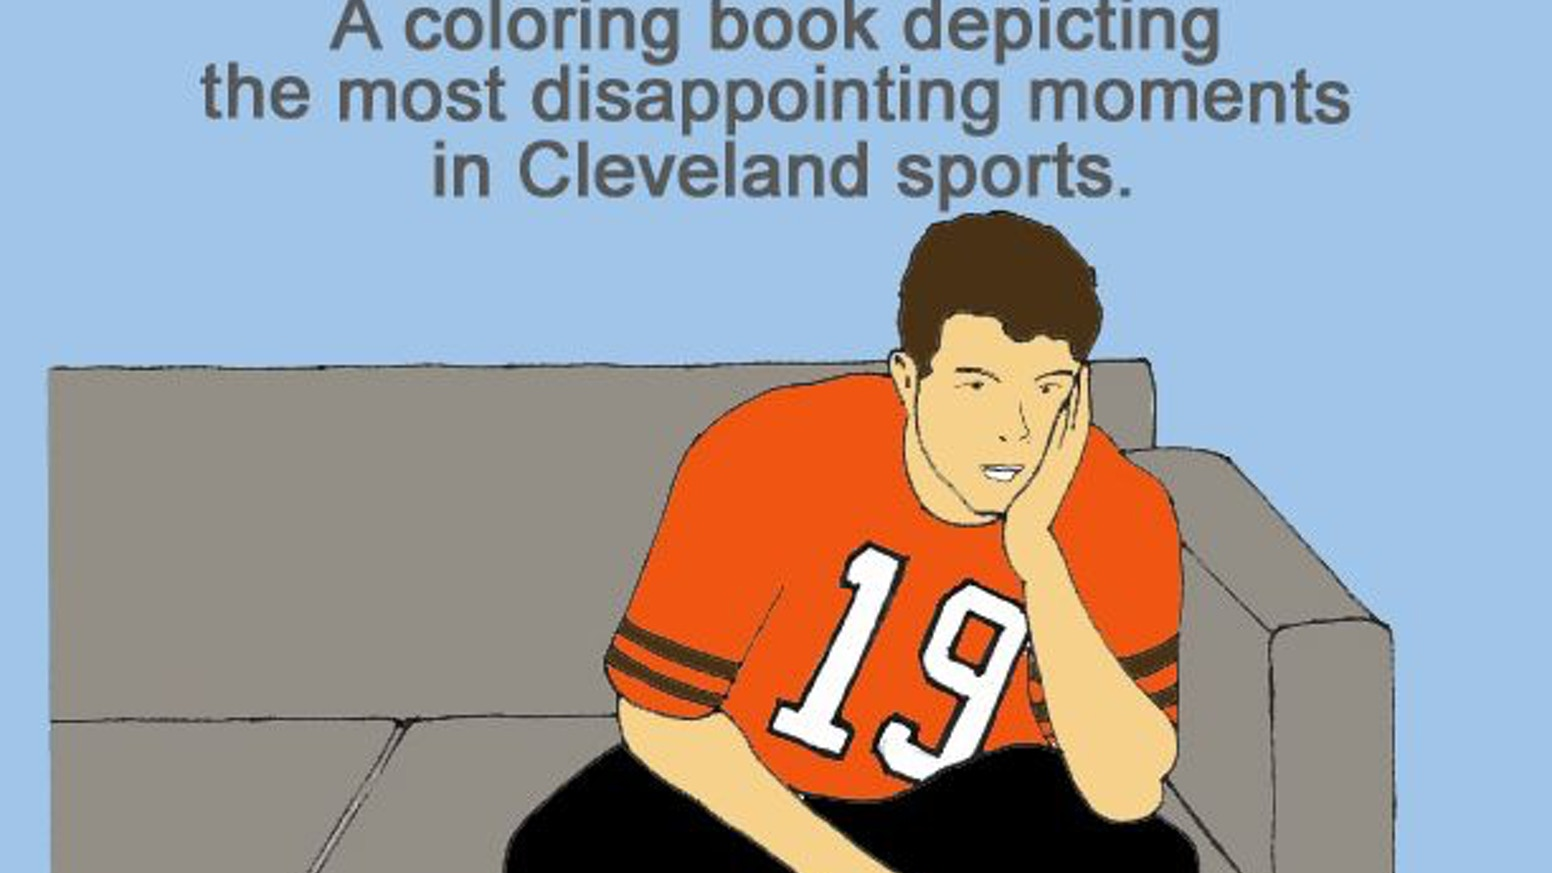 a humorous educational coloring book for the whole family depicting famous disappointing moments from - Cleveland Sports Coloring Book